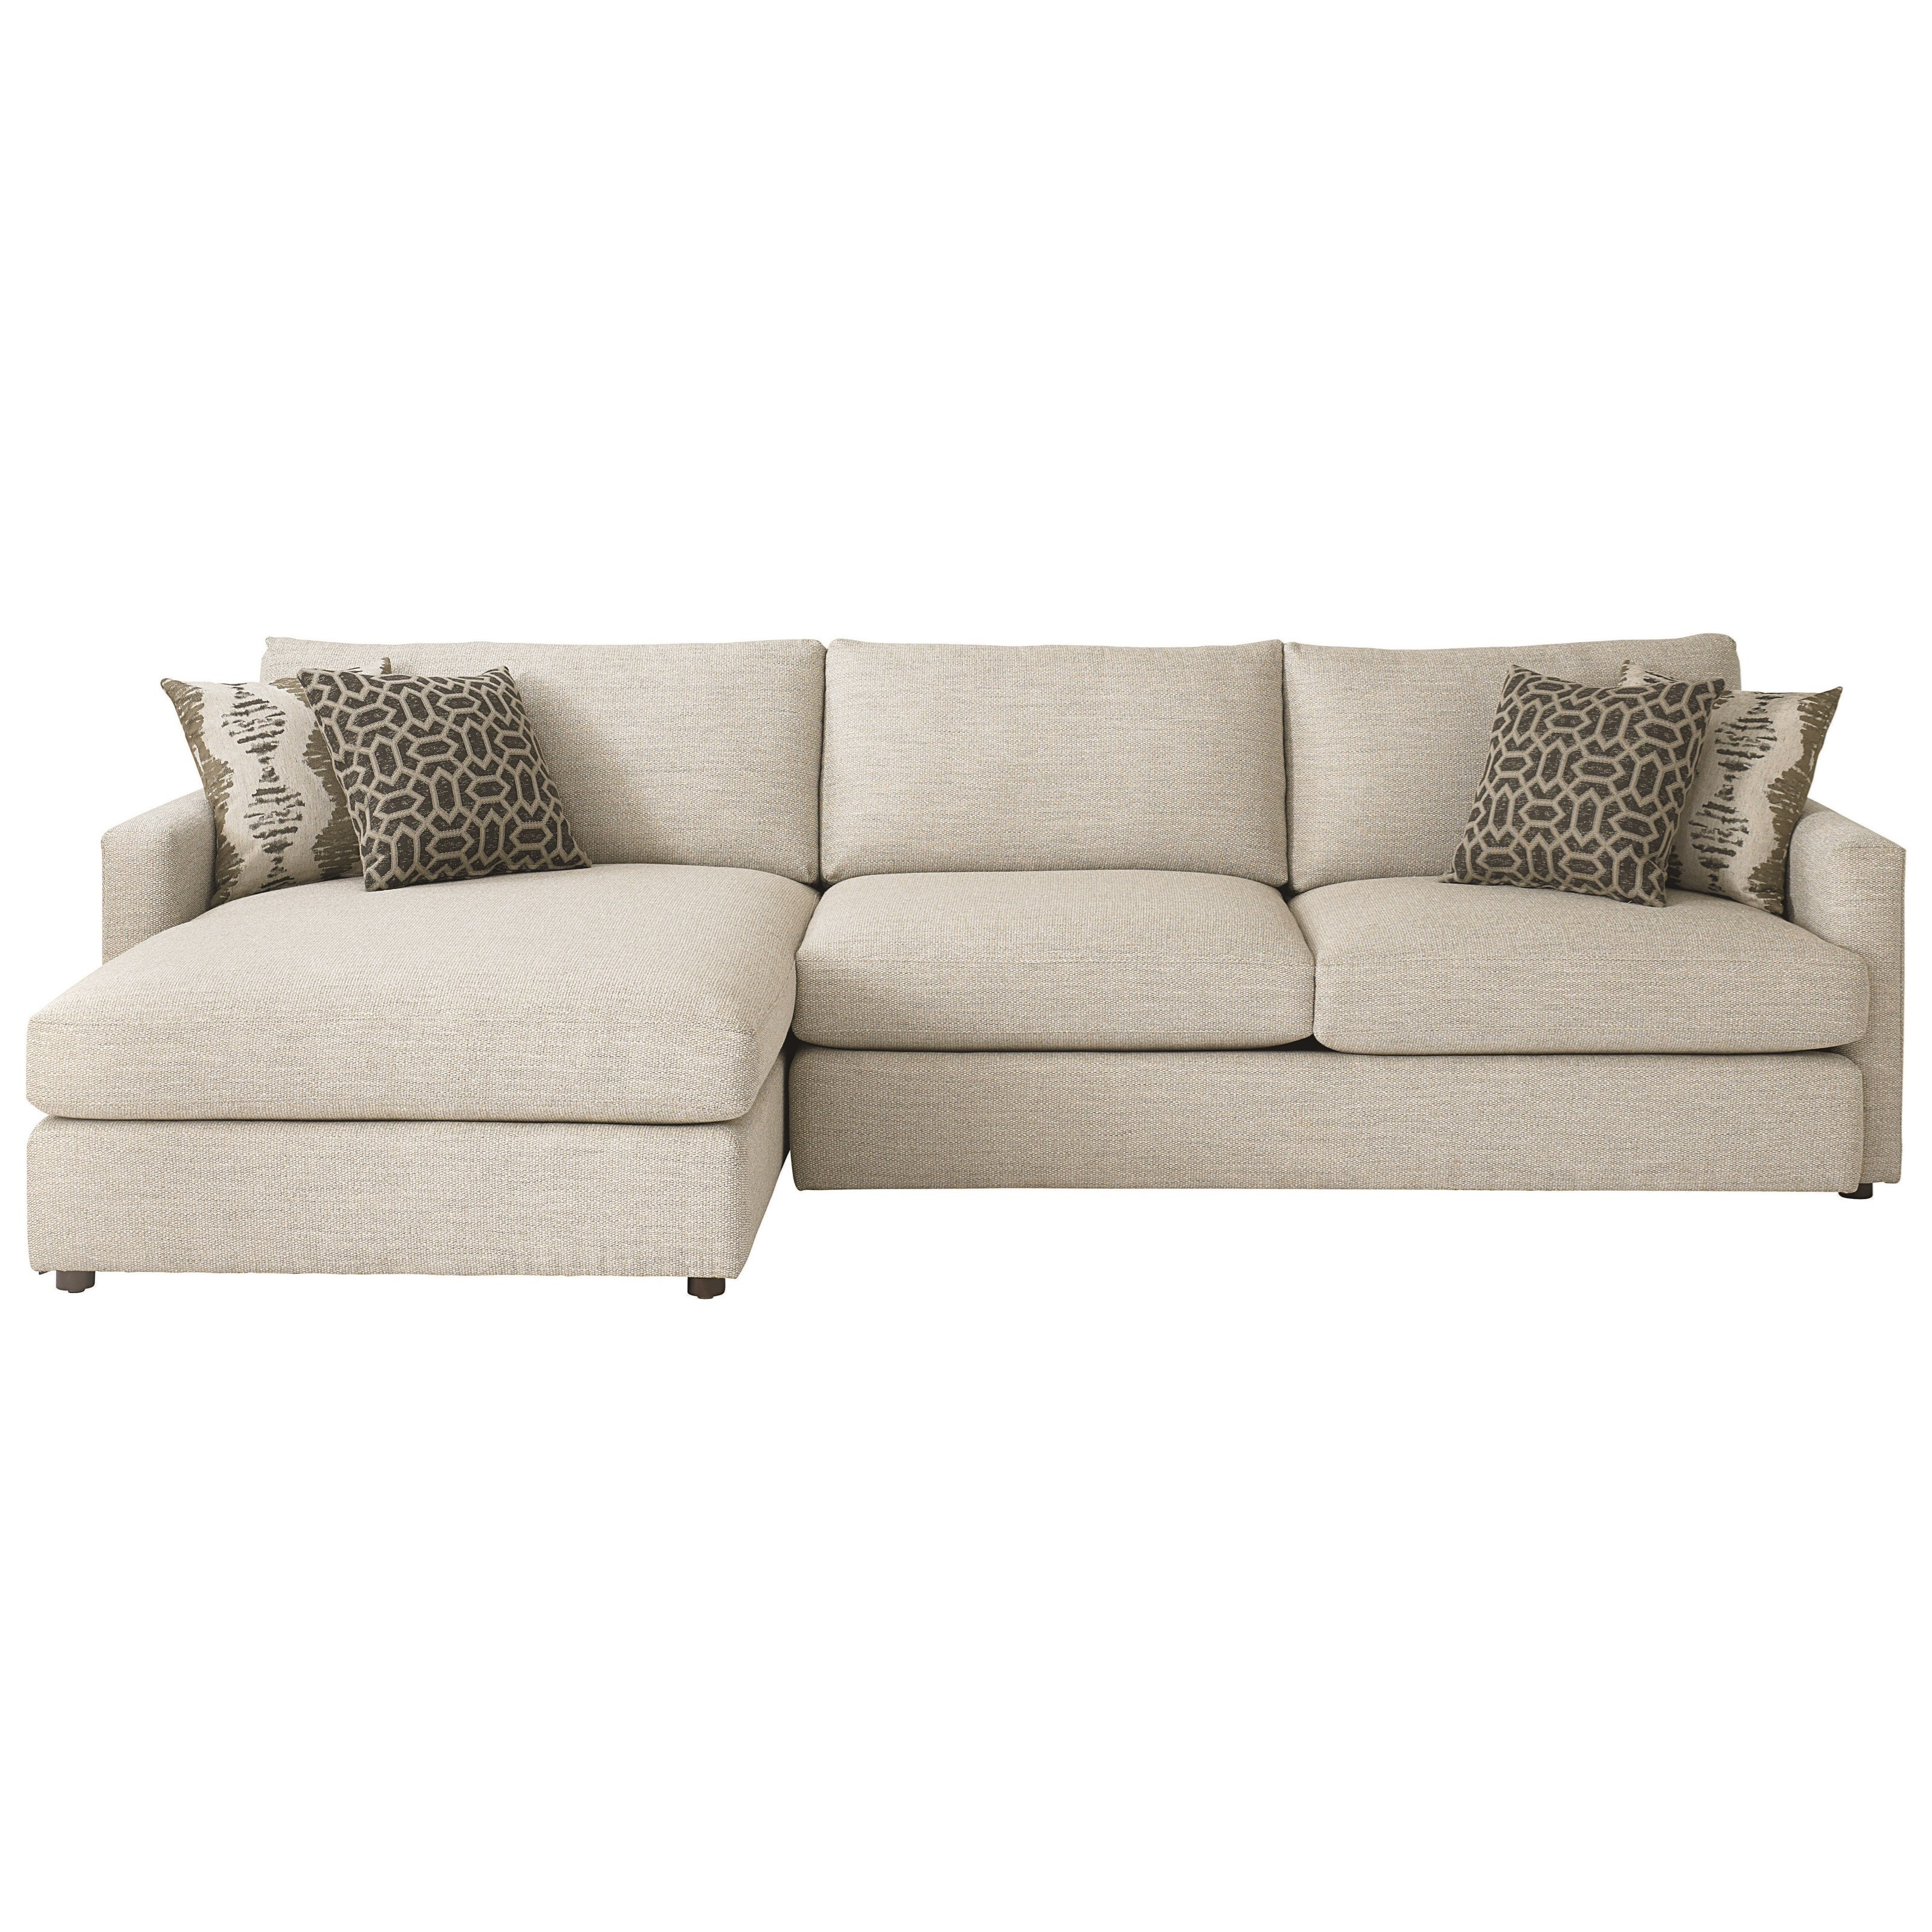 Allure Sectional with Left Arm Facing Chaise by Bassett at Williams & Kay